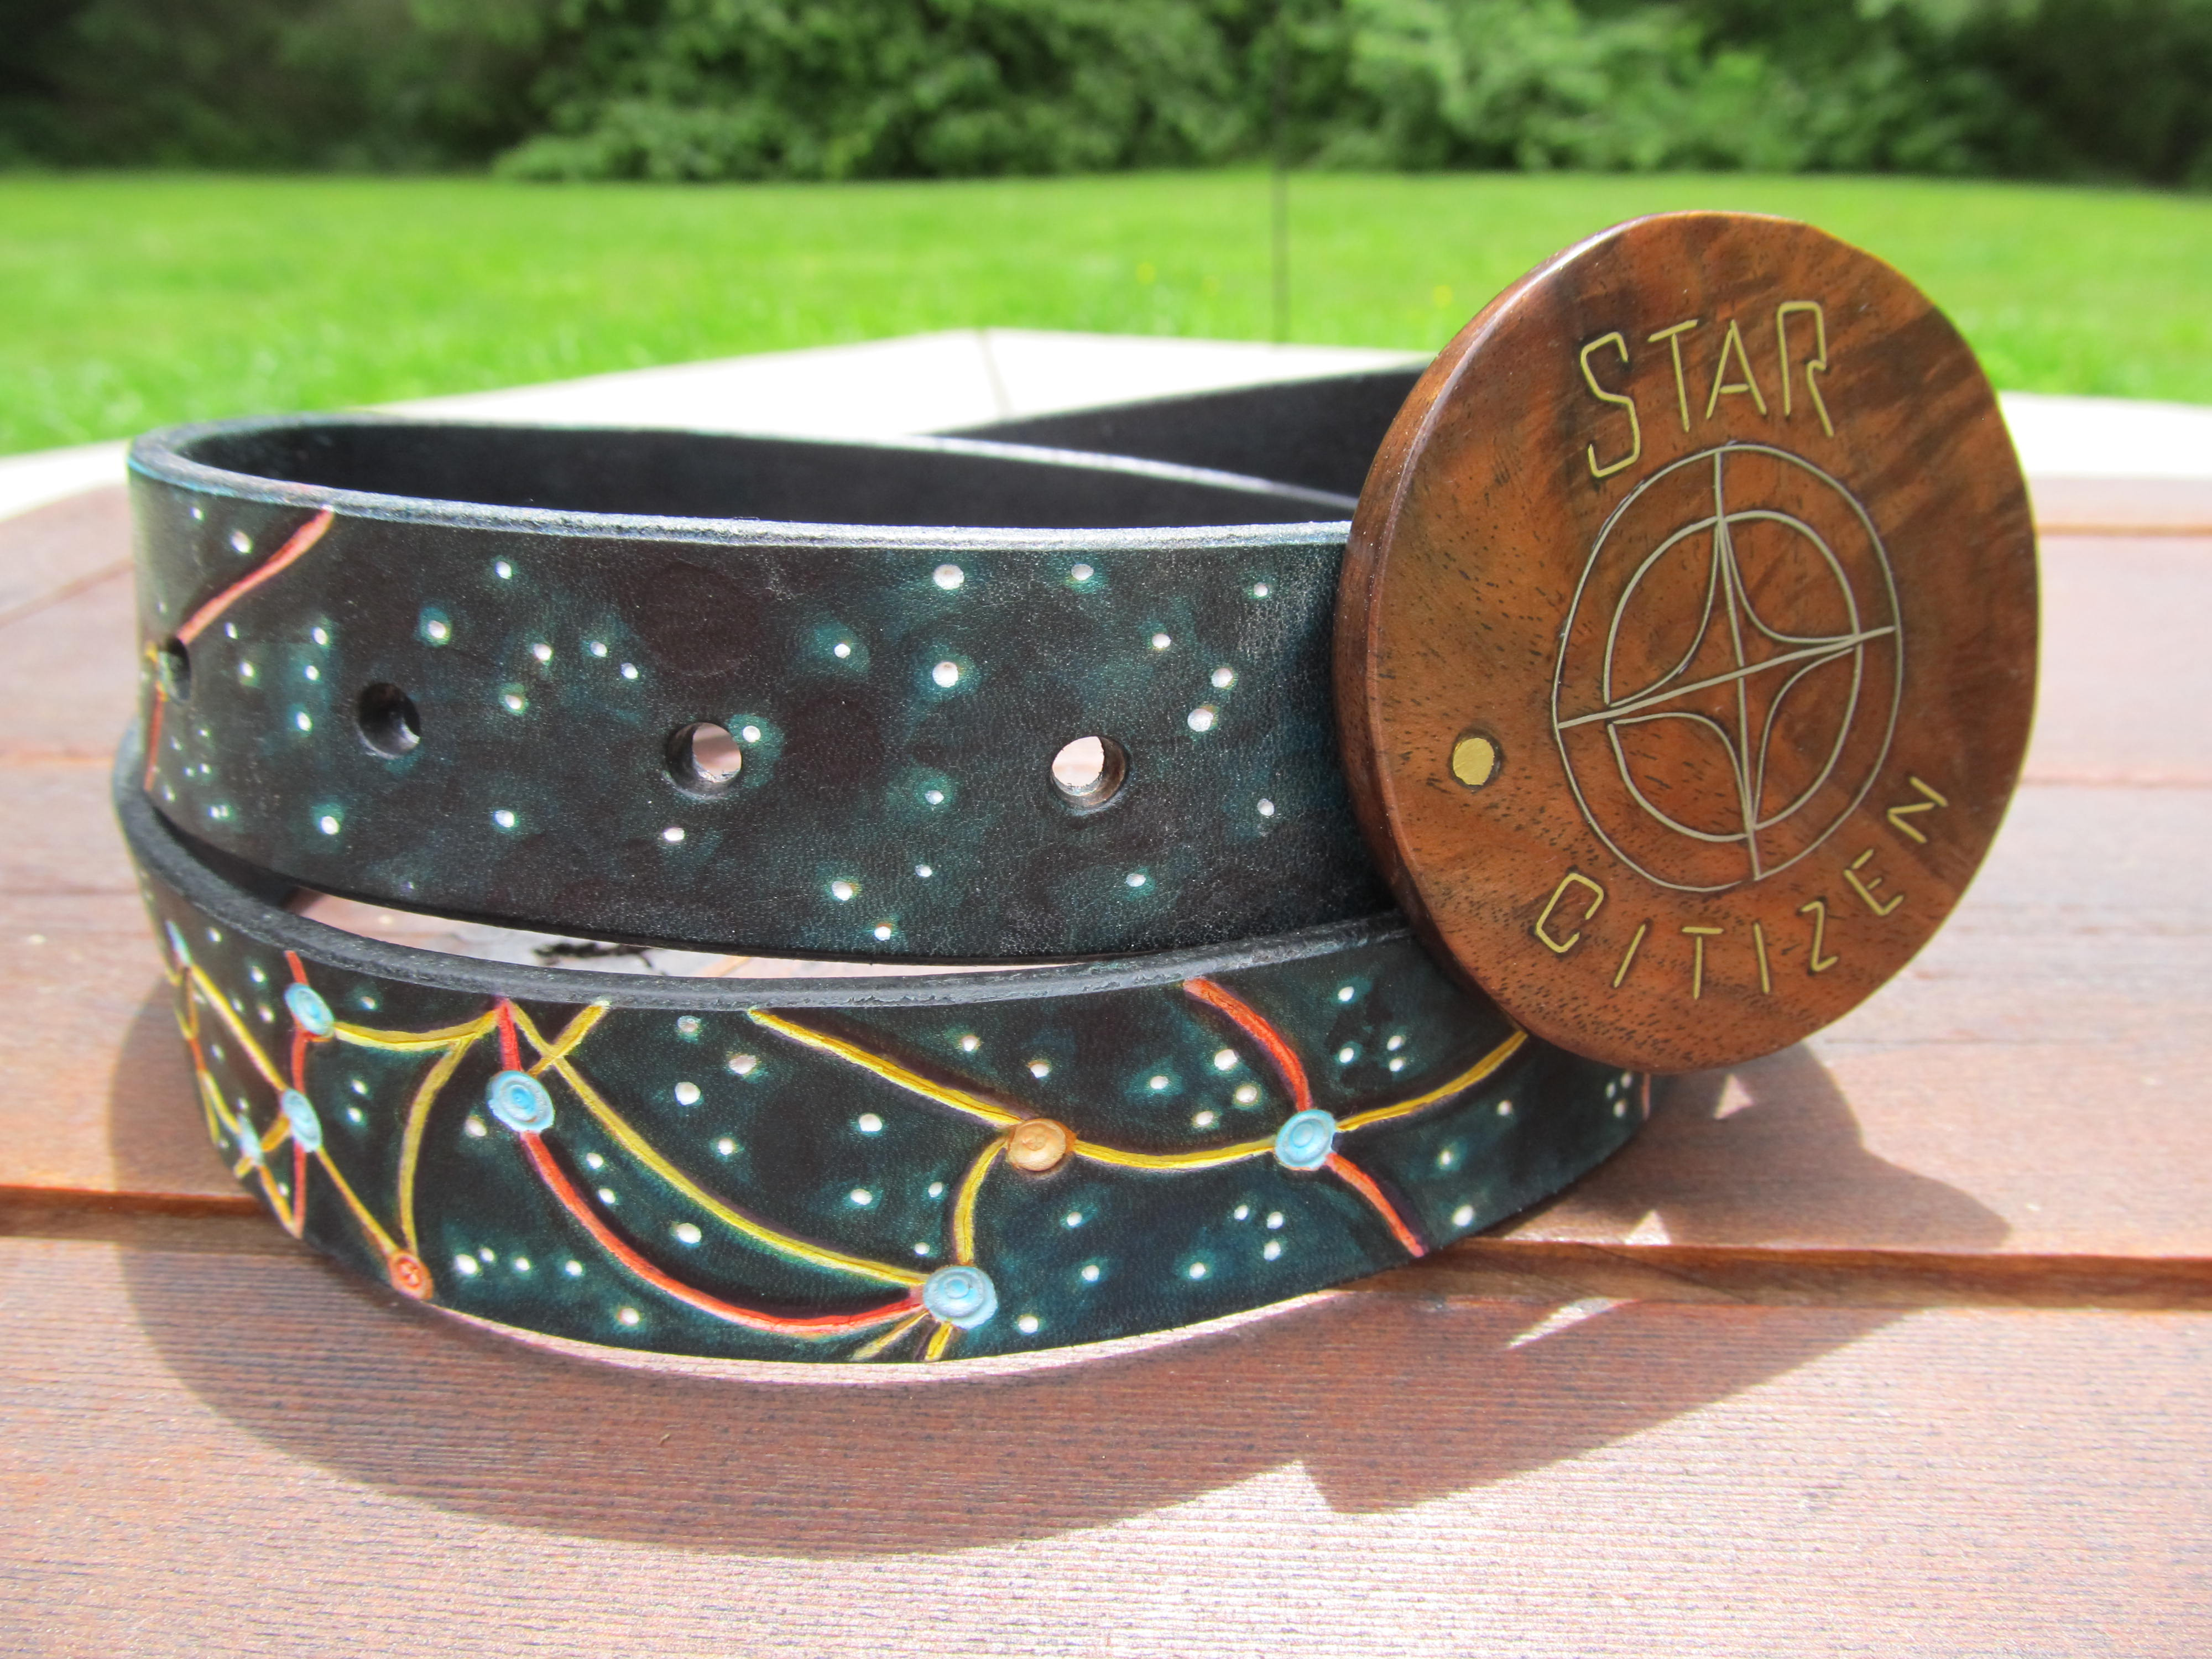 Rsi Star Map.Citizen Spotlight Rsi Bracelet And Star Map Belt Roberts Space